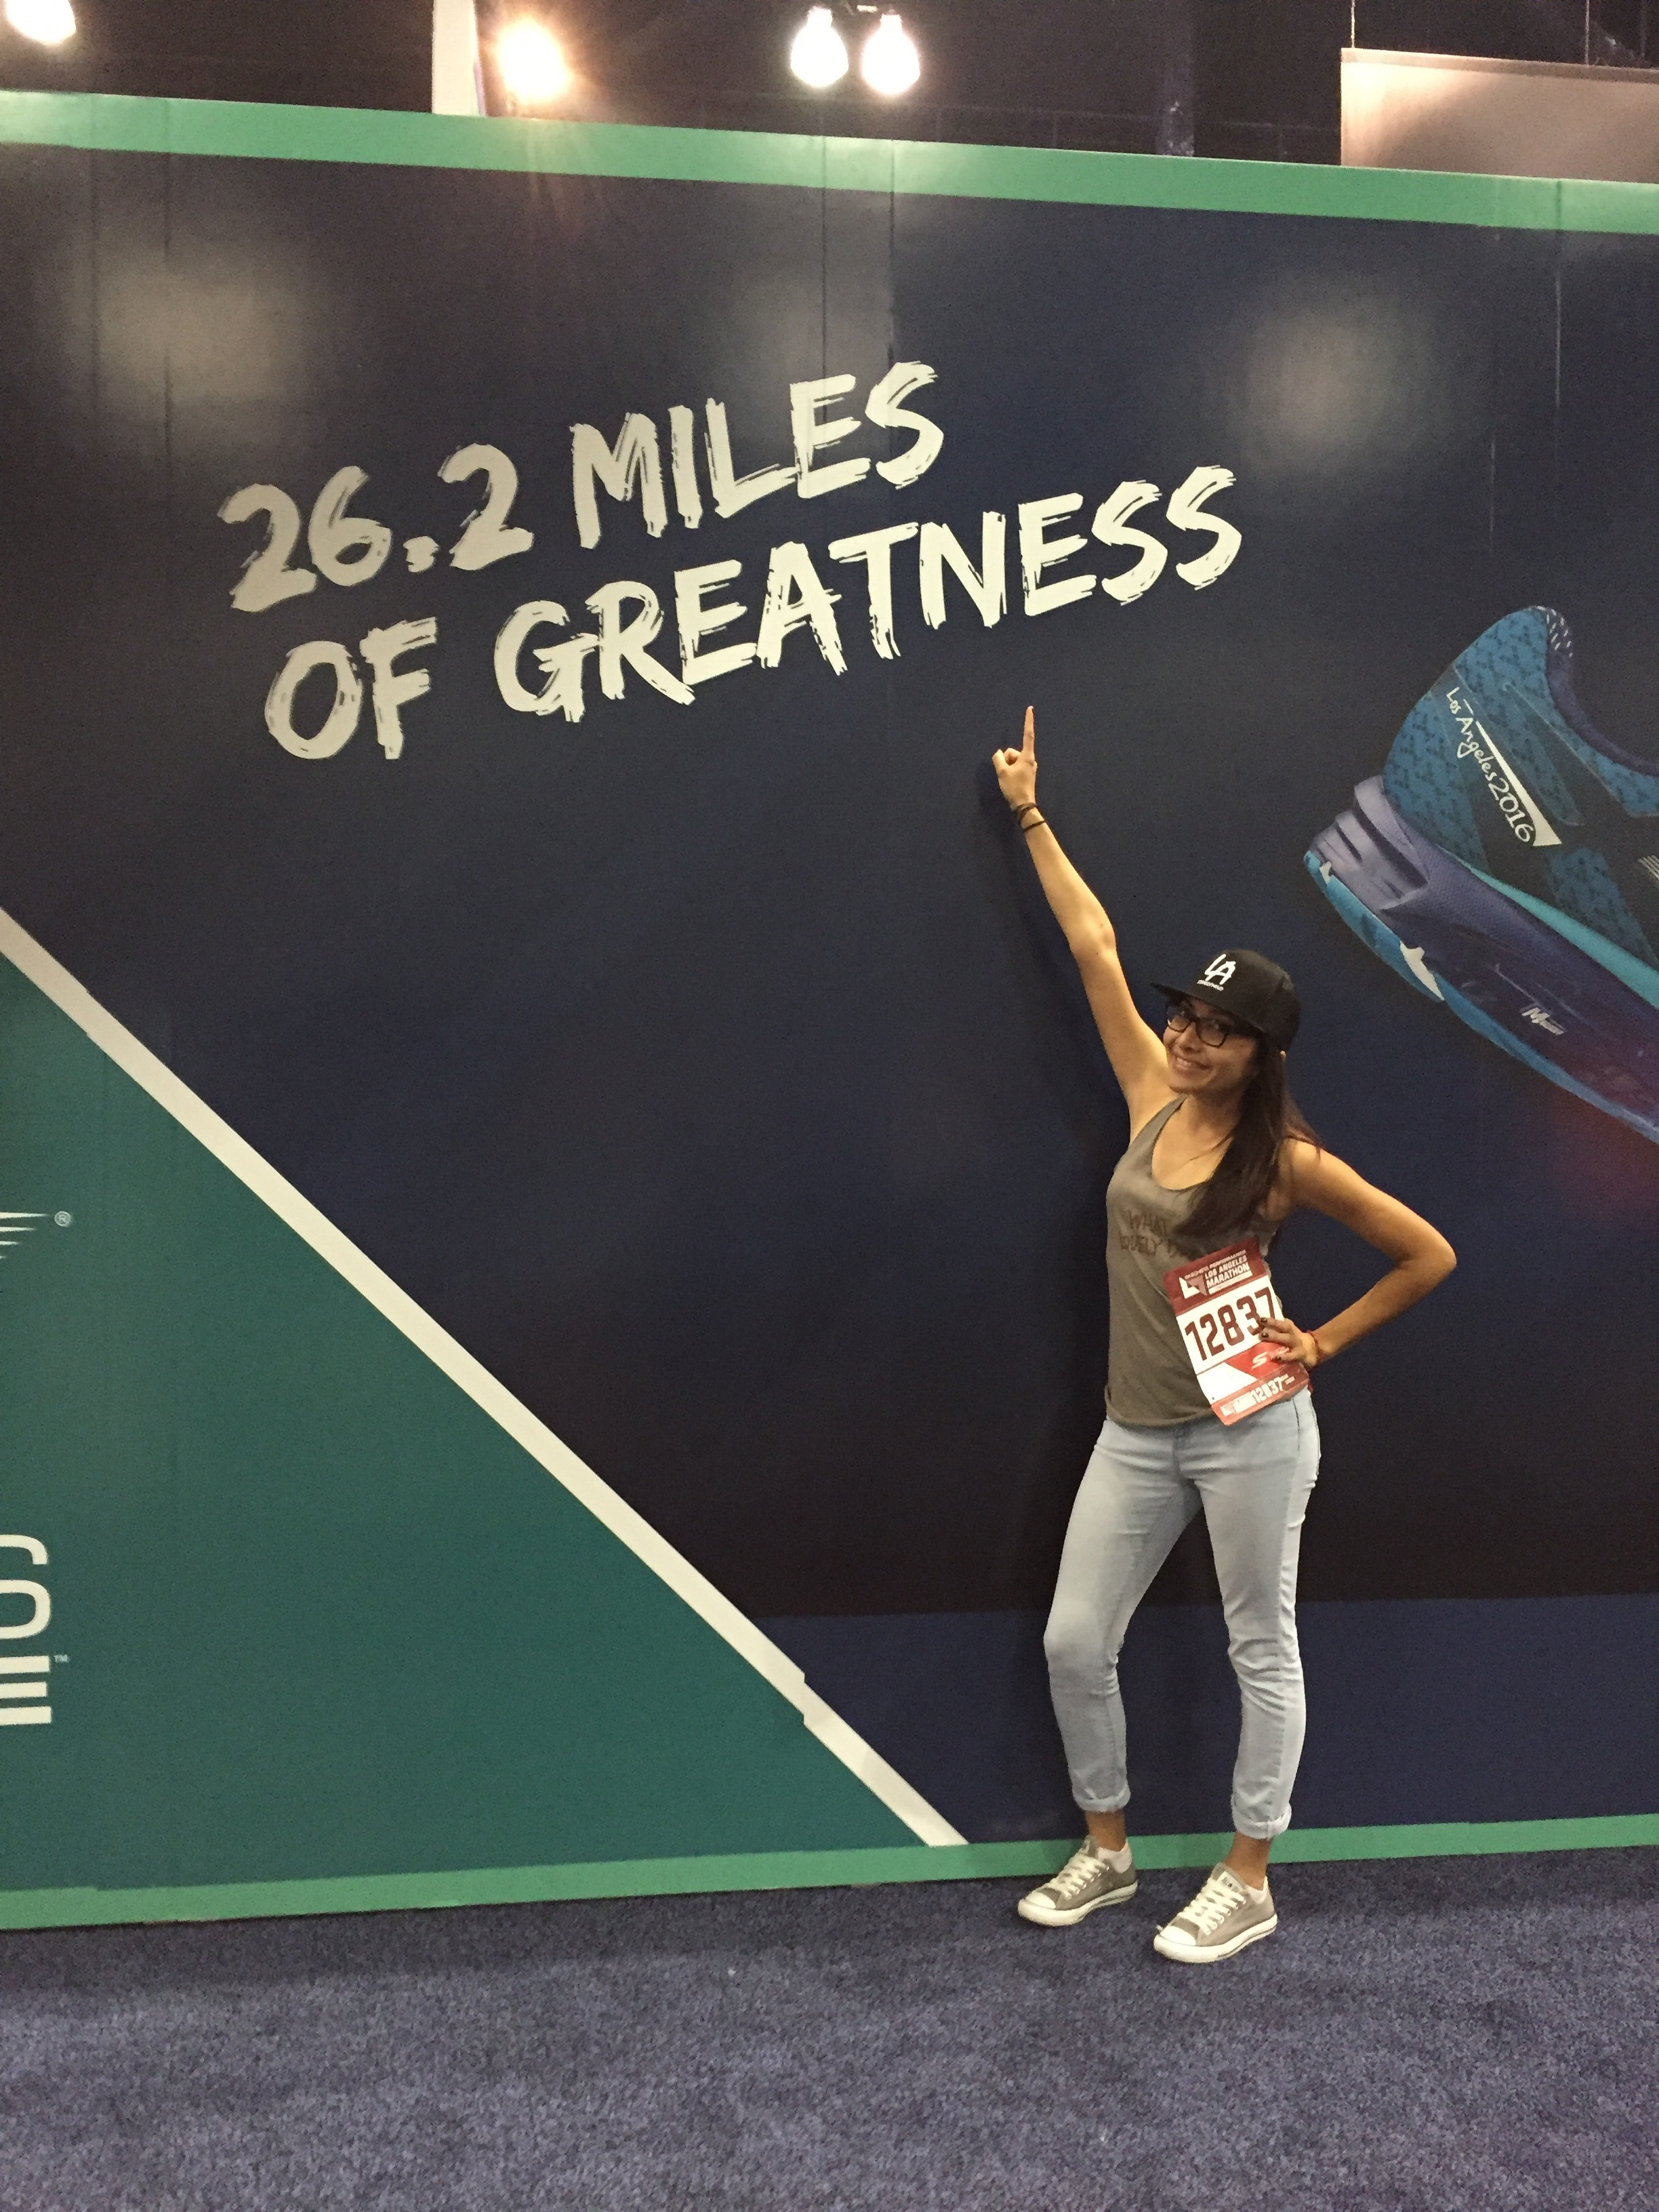 """- """"Running becomes a mental challenge after a few miles, but once you cross that finish line, you feel invincible, powerful, and fearless. I hope everyone that runs with me feels that same way because it is an amazing feeling.""""-Itzel Magana"""